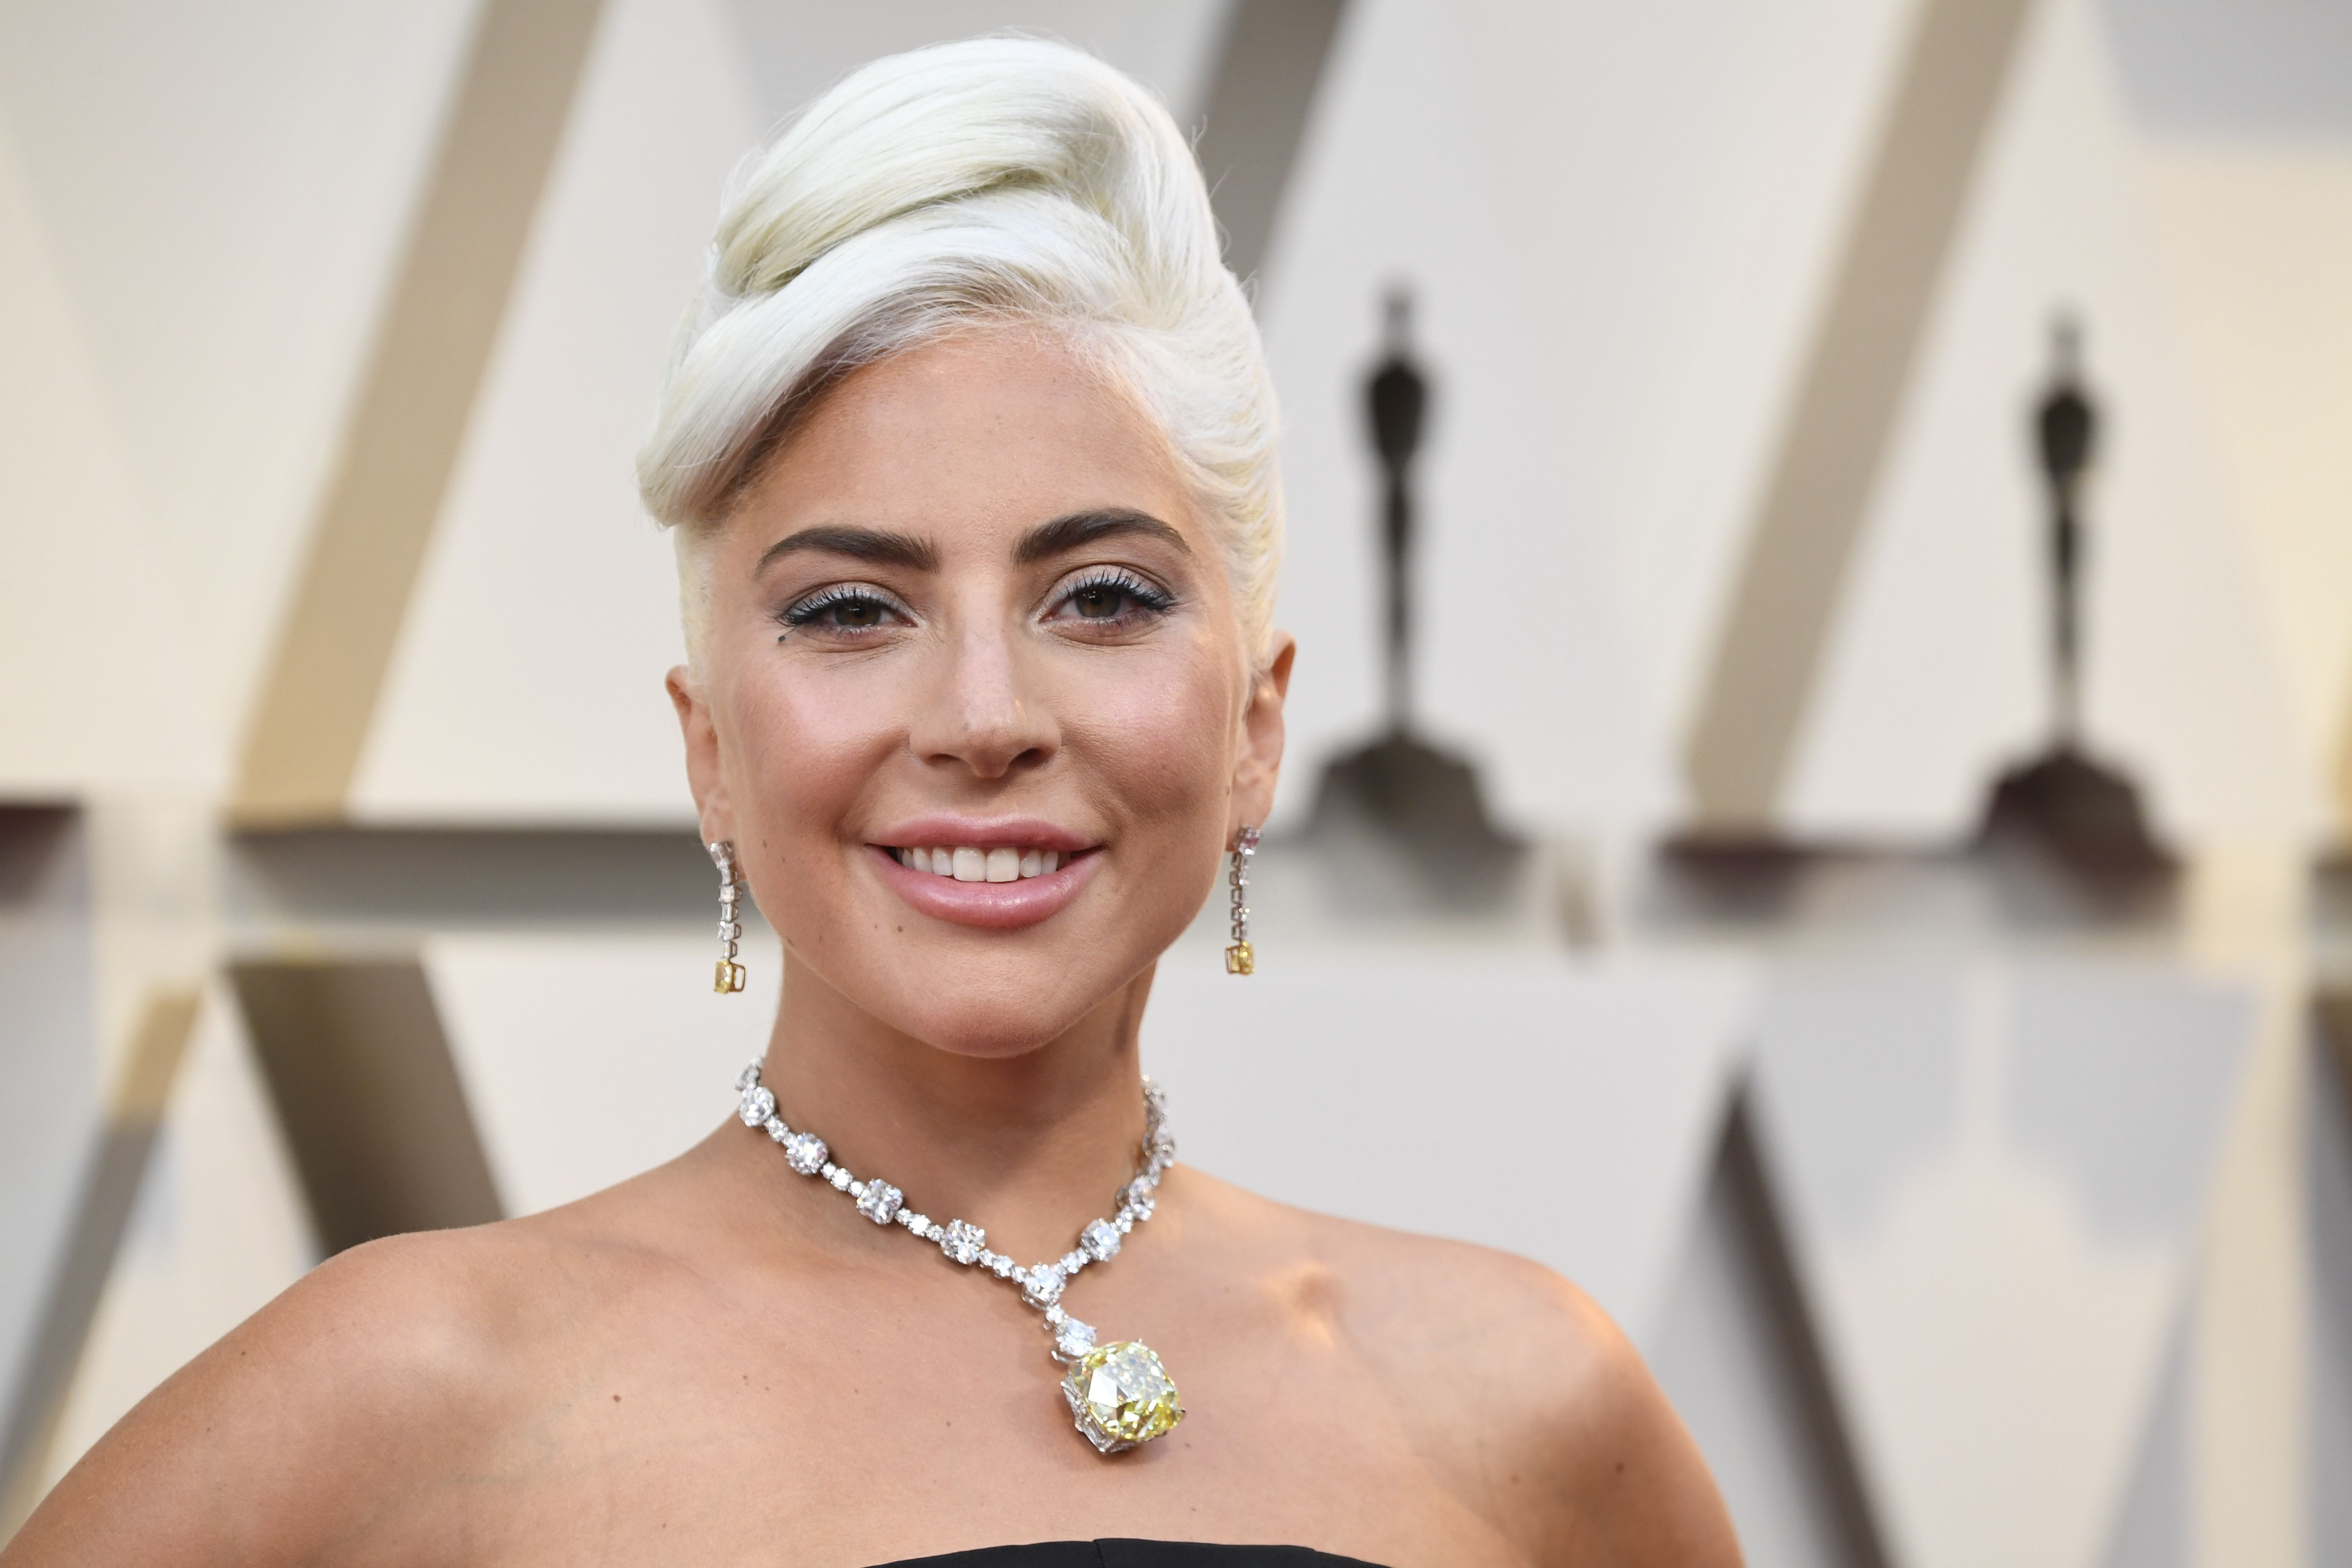 Lady GaGa poses for a photo on the red carpet.